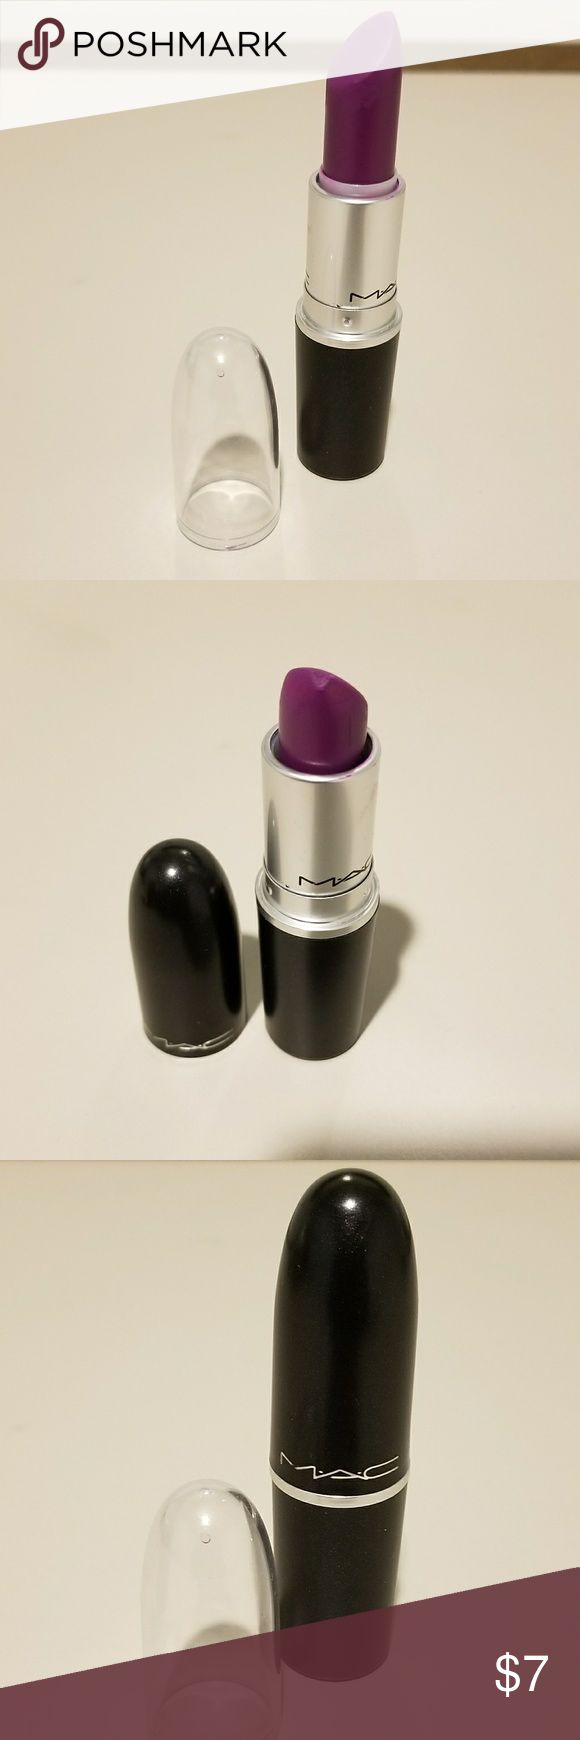 MAC: Lipstick Heroine MAC: Lipstick Heroine    Authentic. Used; see pictures for condition & product use; No box. Clear cap & original MAC cap included.     Purchased from MAC    No Trades, holds, ads for other sites or price negotiation in comments.  Please submit reasonable offers through Offer button or using Bundles.  Thank you! MAC Cosmetics Makeup Lipstick